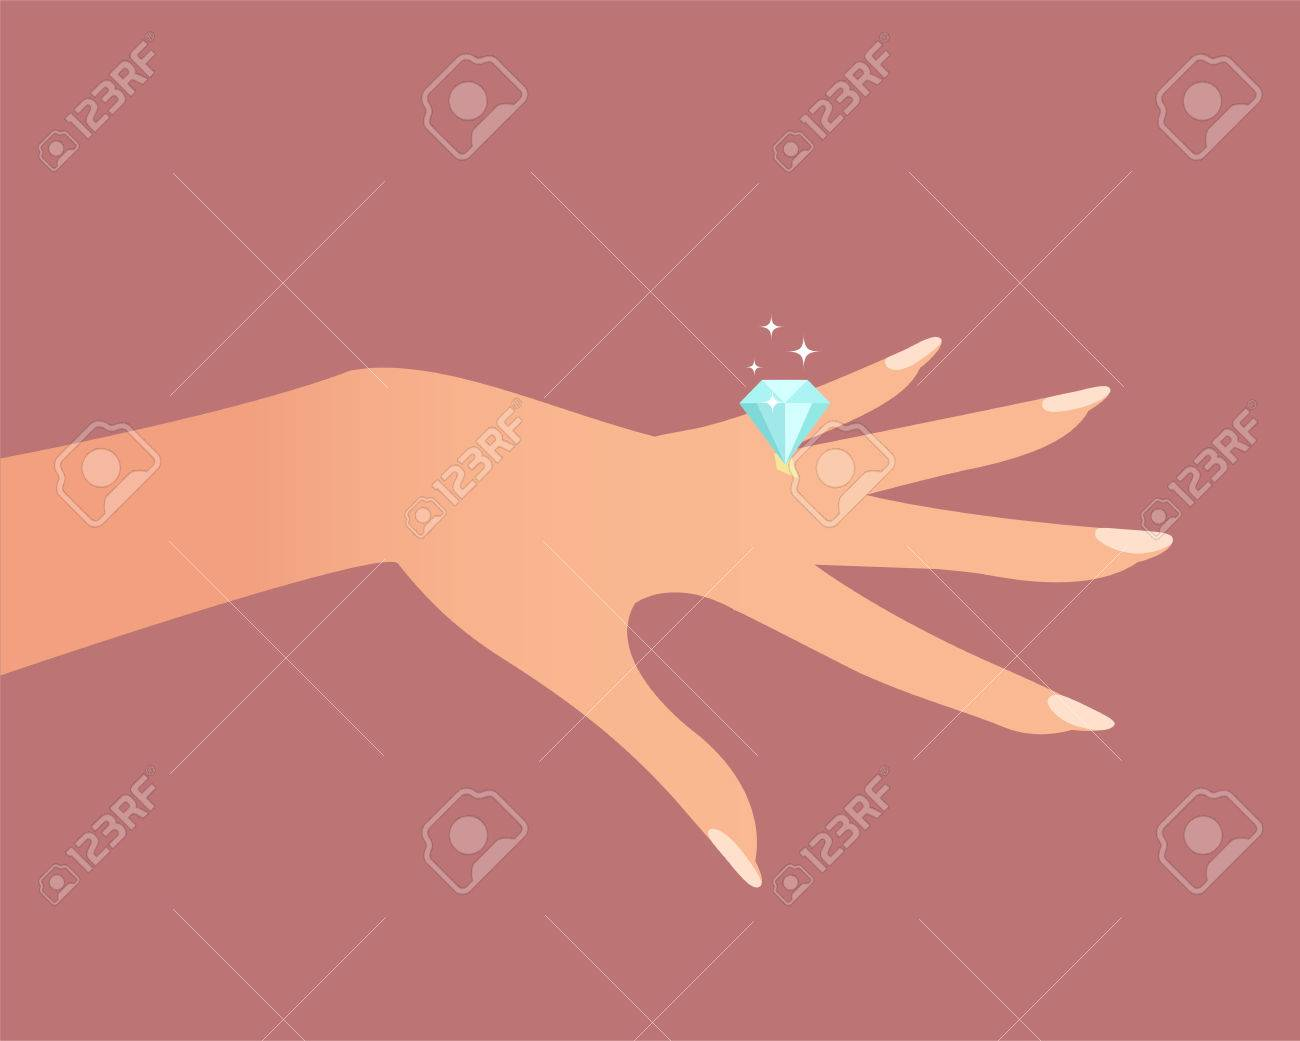 Wedding Ring On Hand. Cartoon Vector Illustration Royalty Free ...